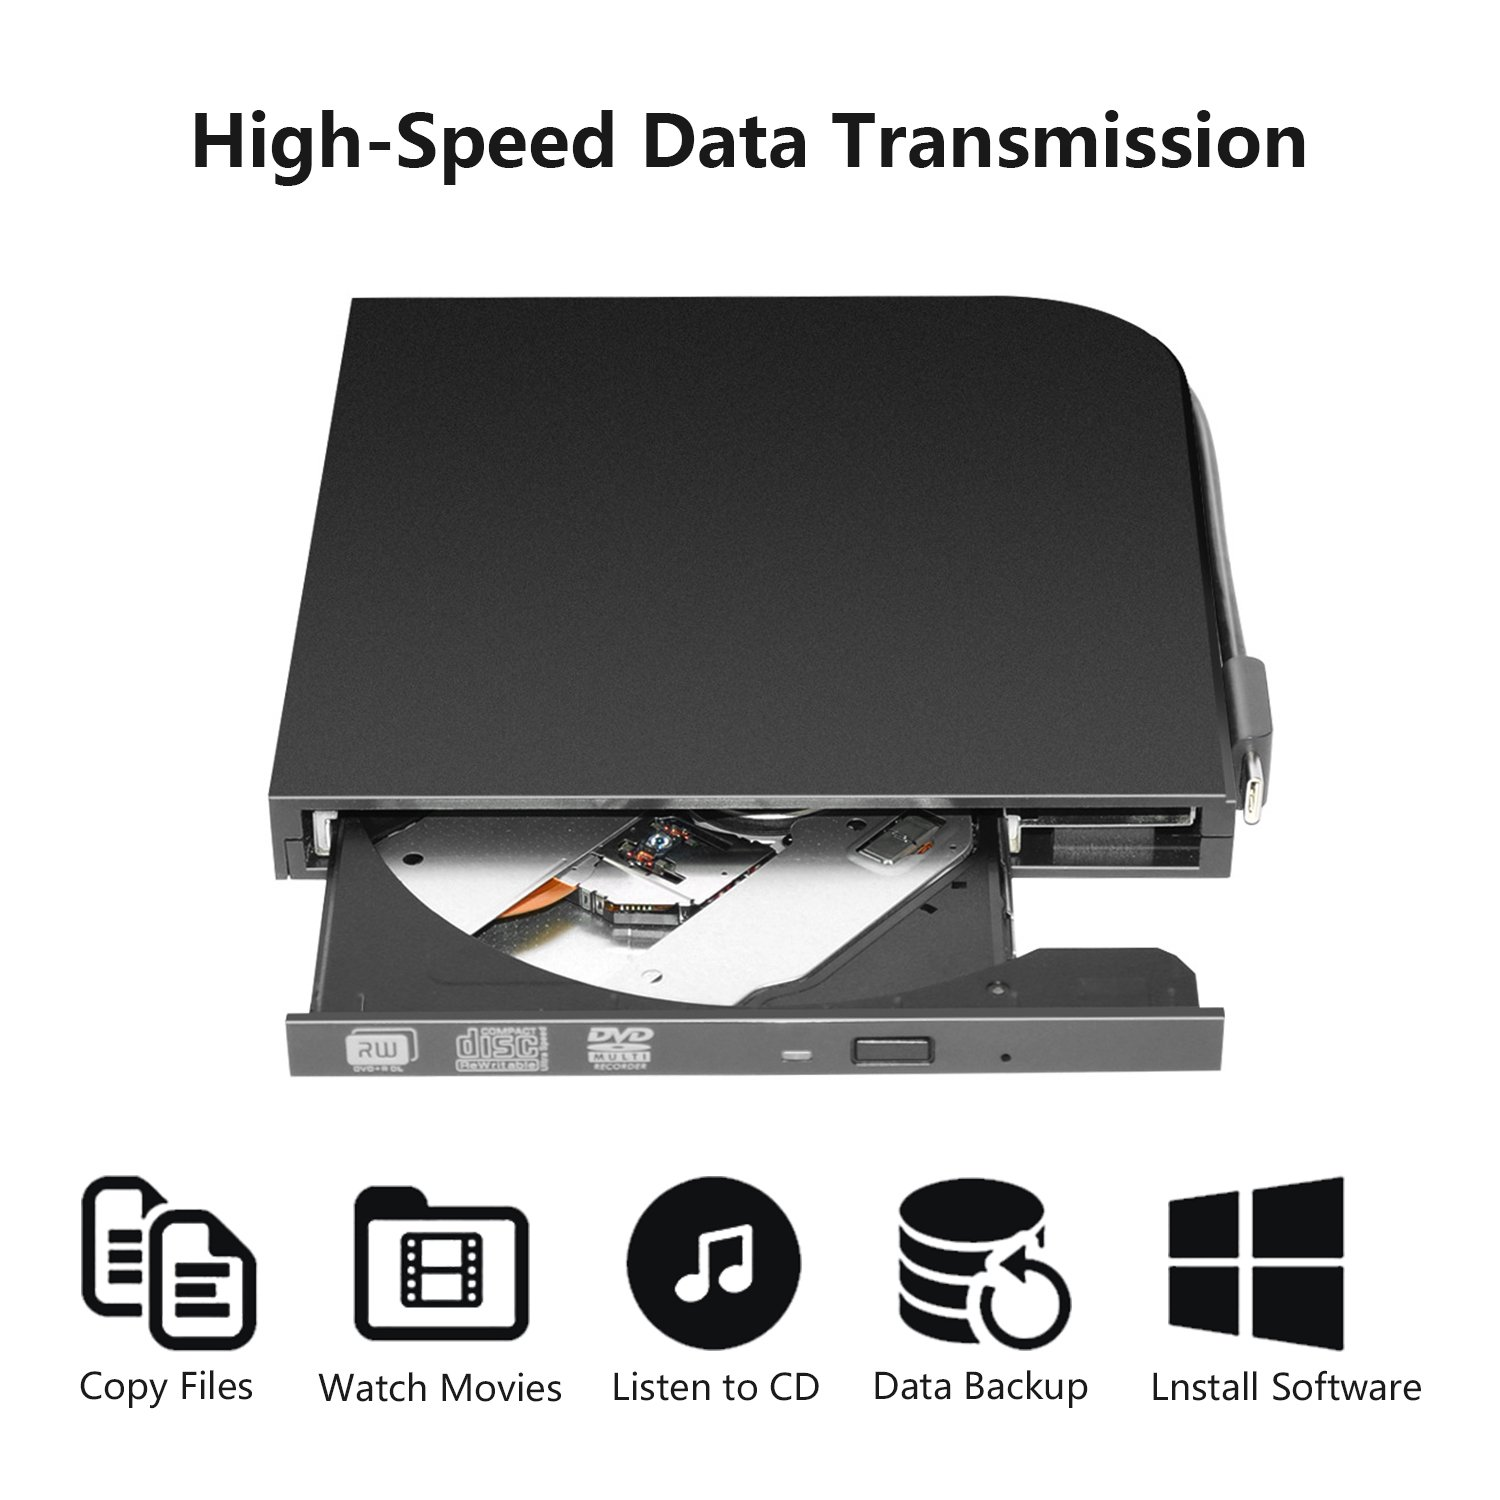 DVD Drive PC Computer CD,External USB Optical Player, Ultra-Thin Portable Type-C DVD Burner/Writer/Rewriter Various Brands Laptop Desktop All-in-one Machines so on